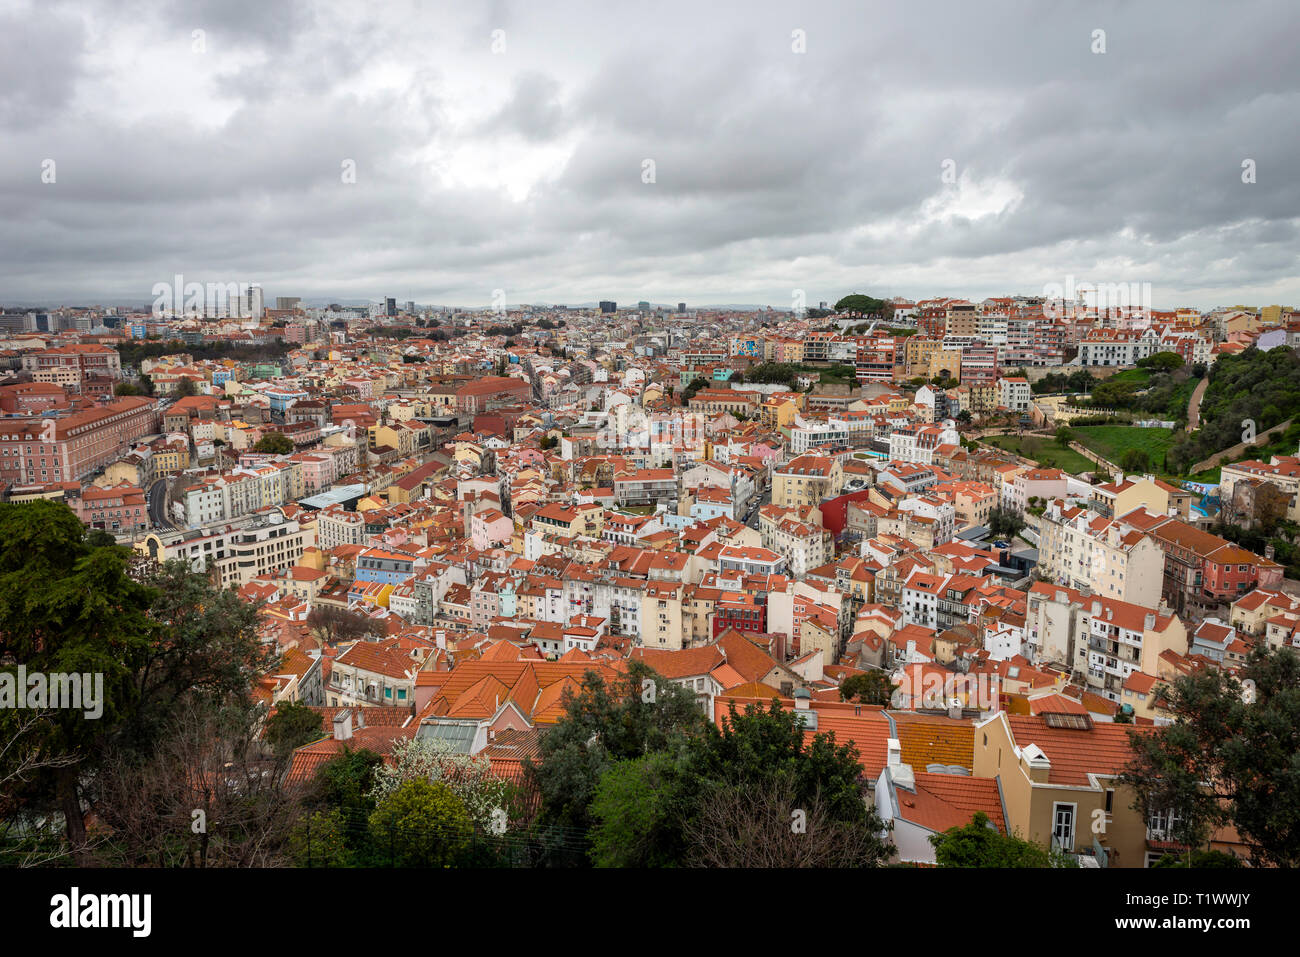 The view over Lisbon from the Sao Jorge Castle, Portugal - Stock Image